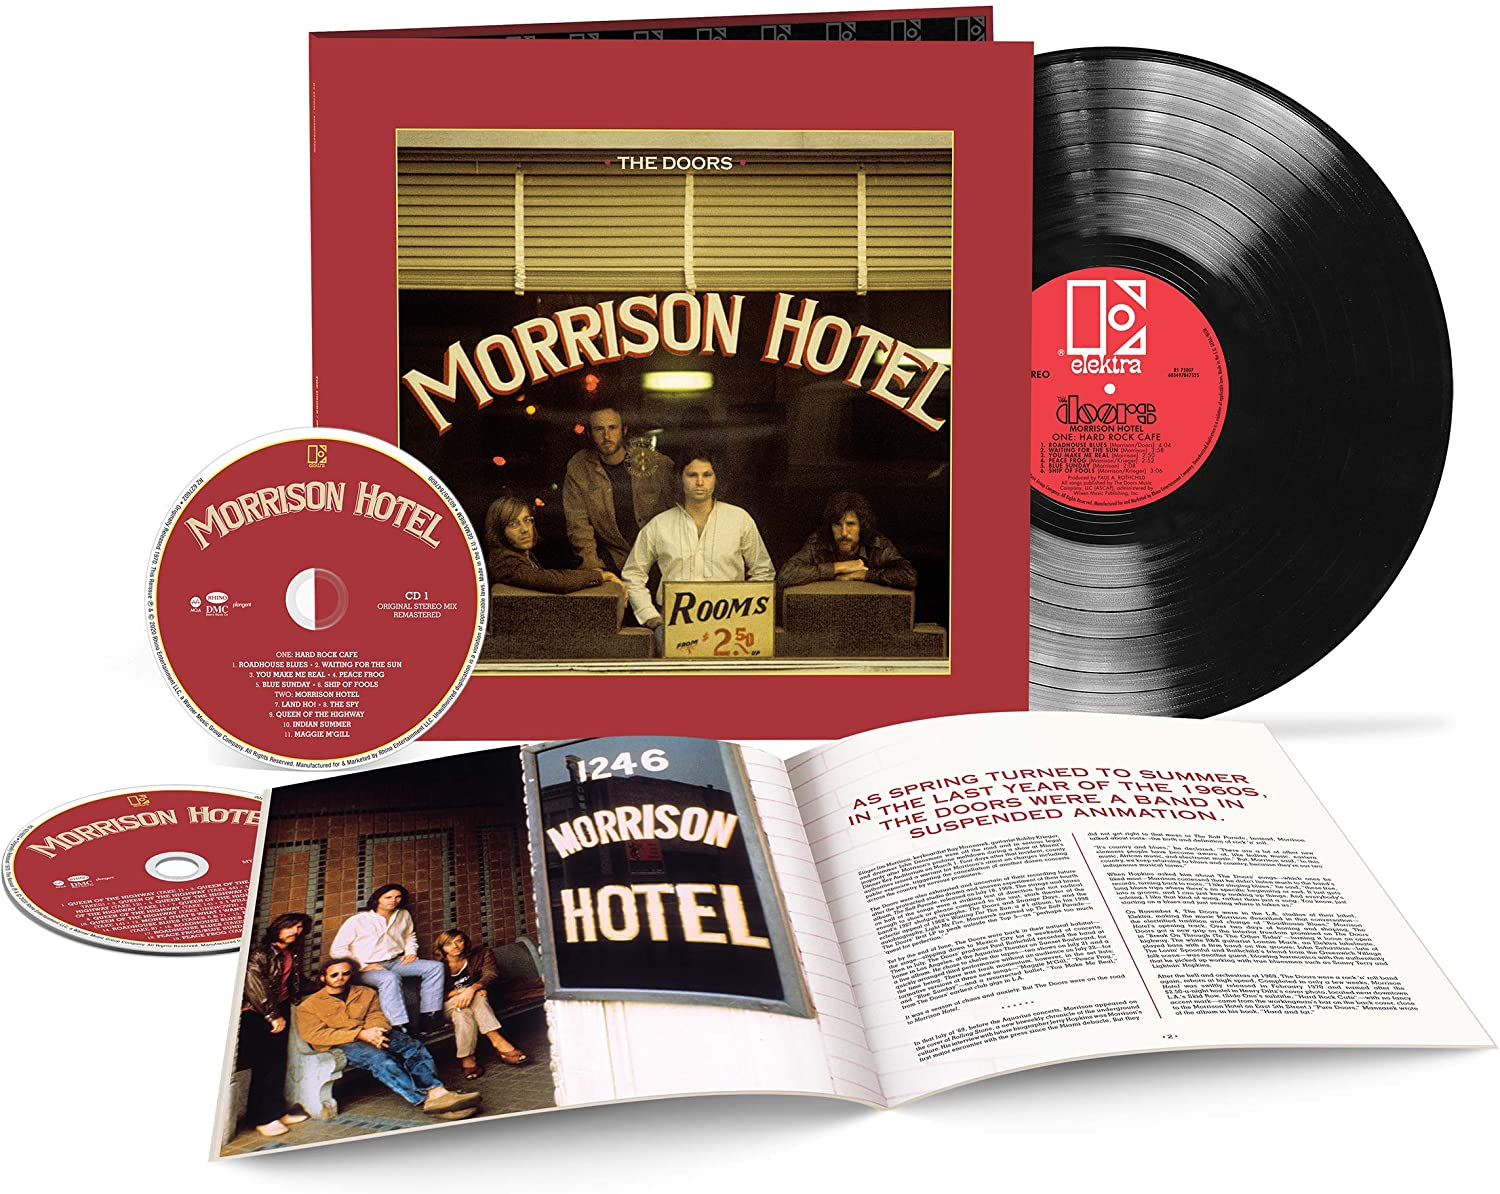 The Doors / Morrison Hotel 50th anniversary